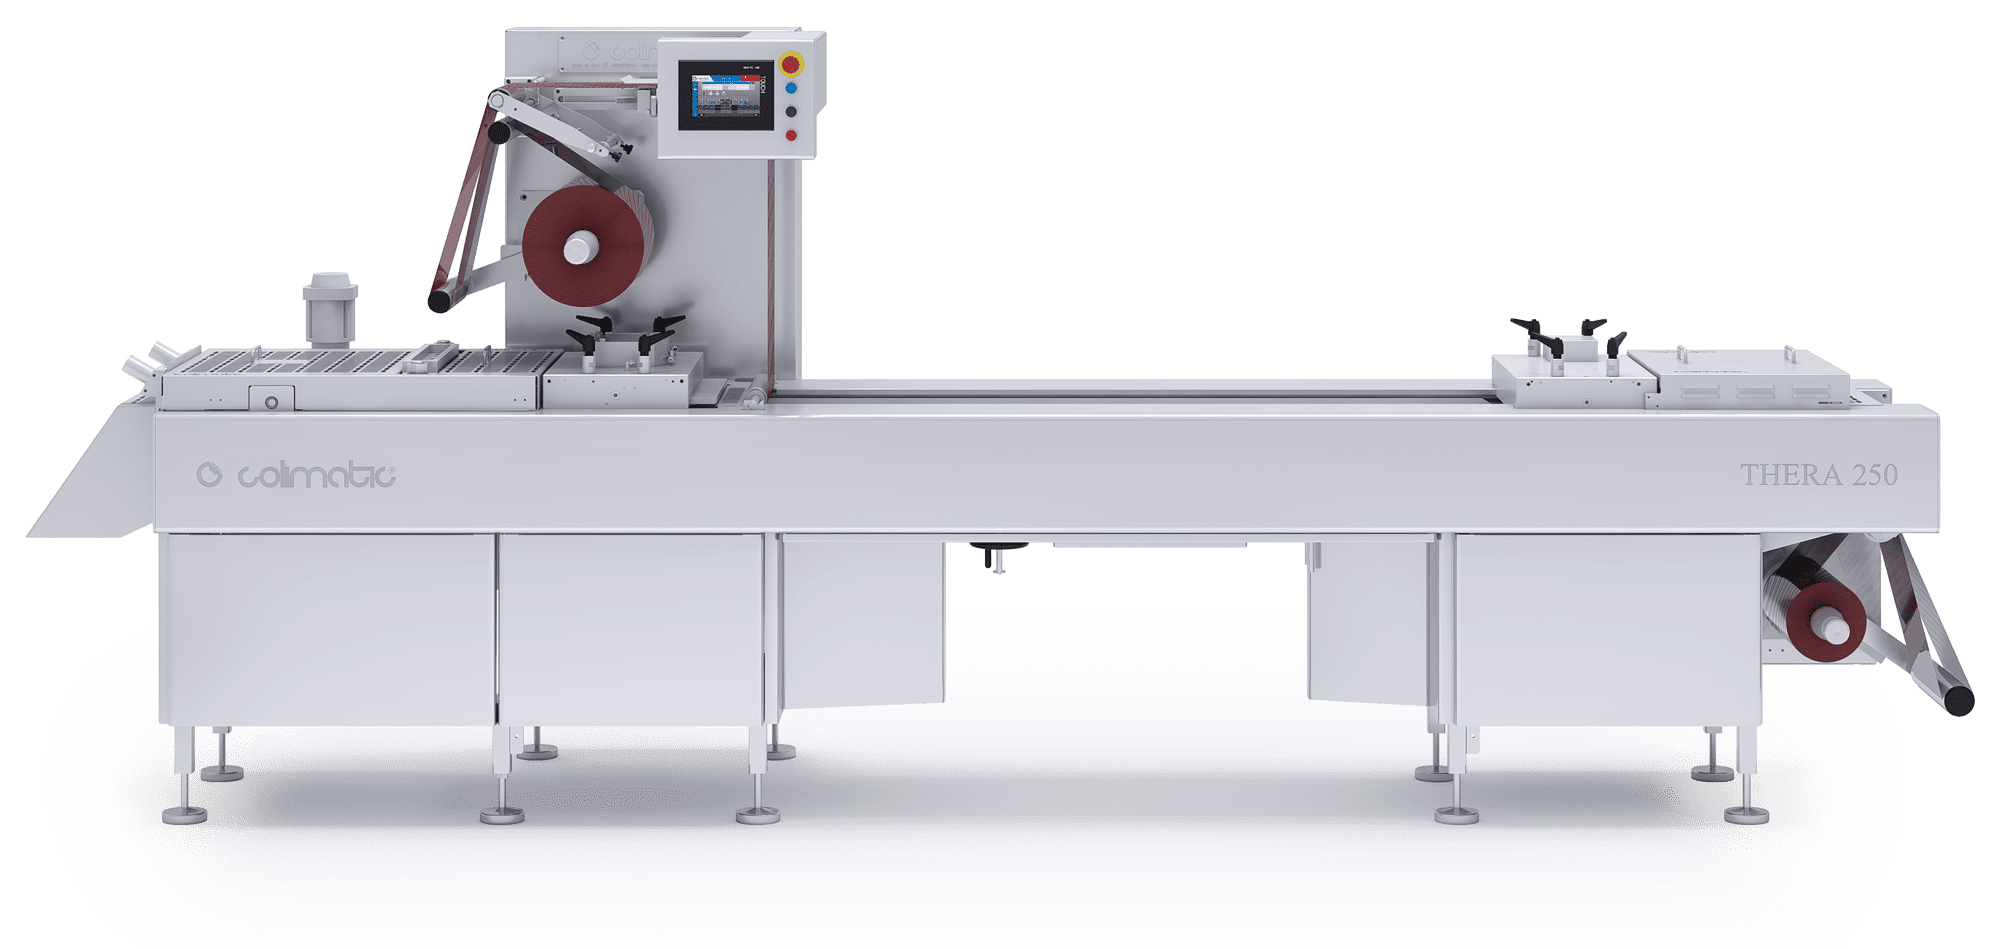 Thermoforming machine 250 - Colimatic thermoforming machines